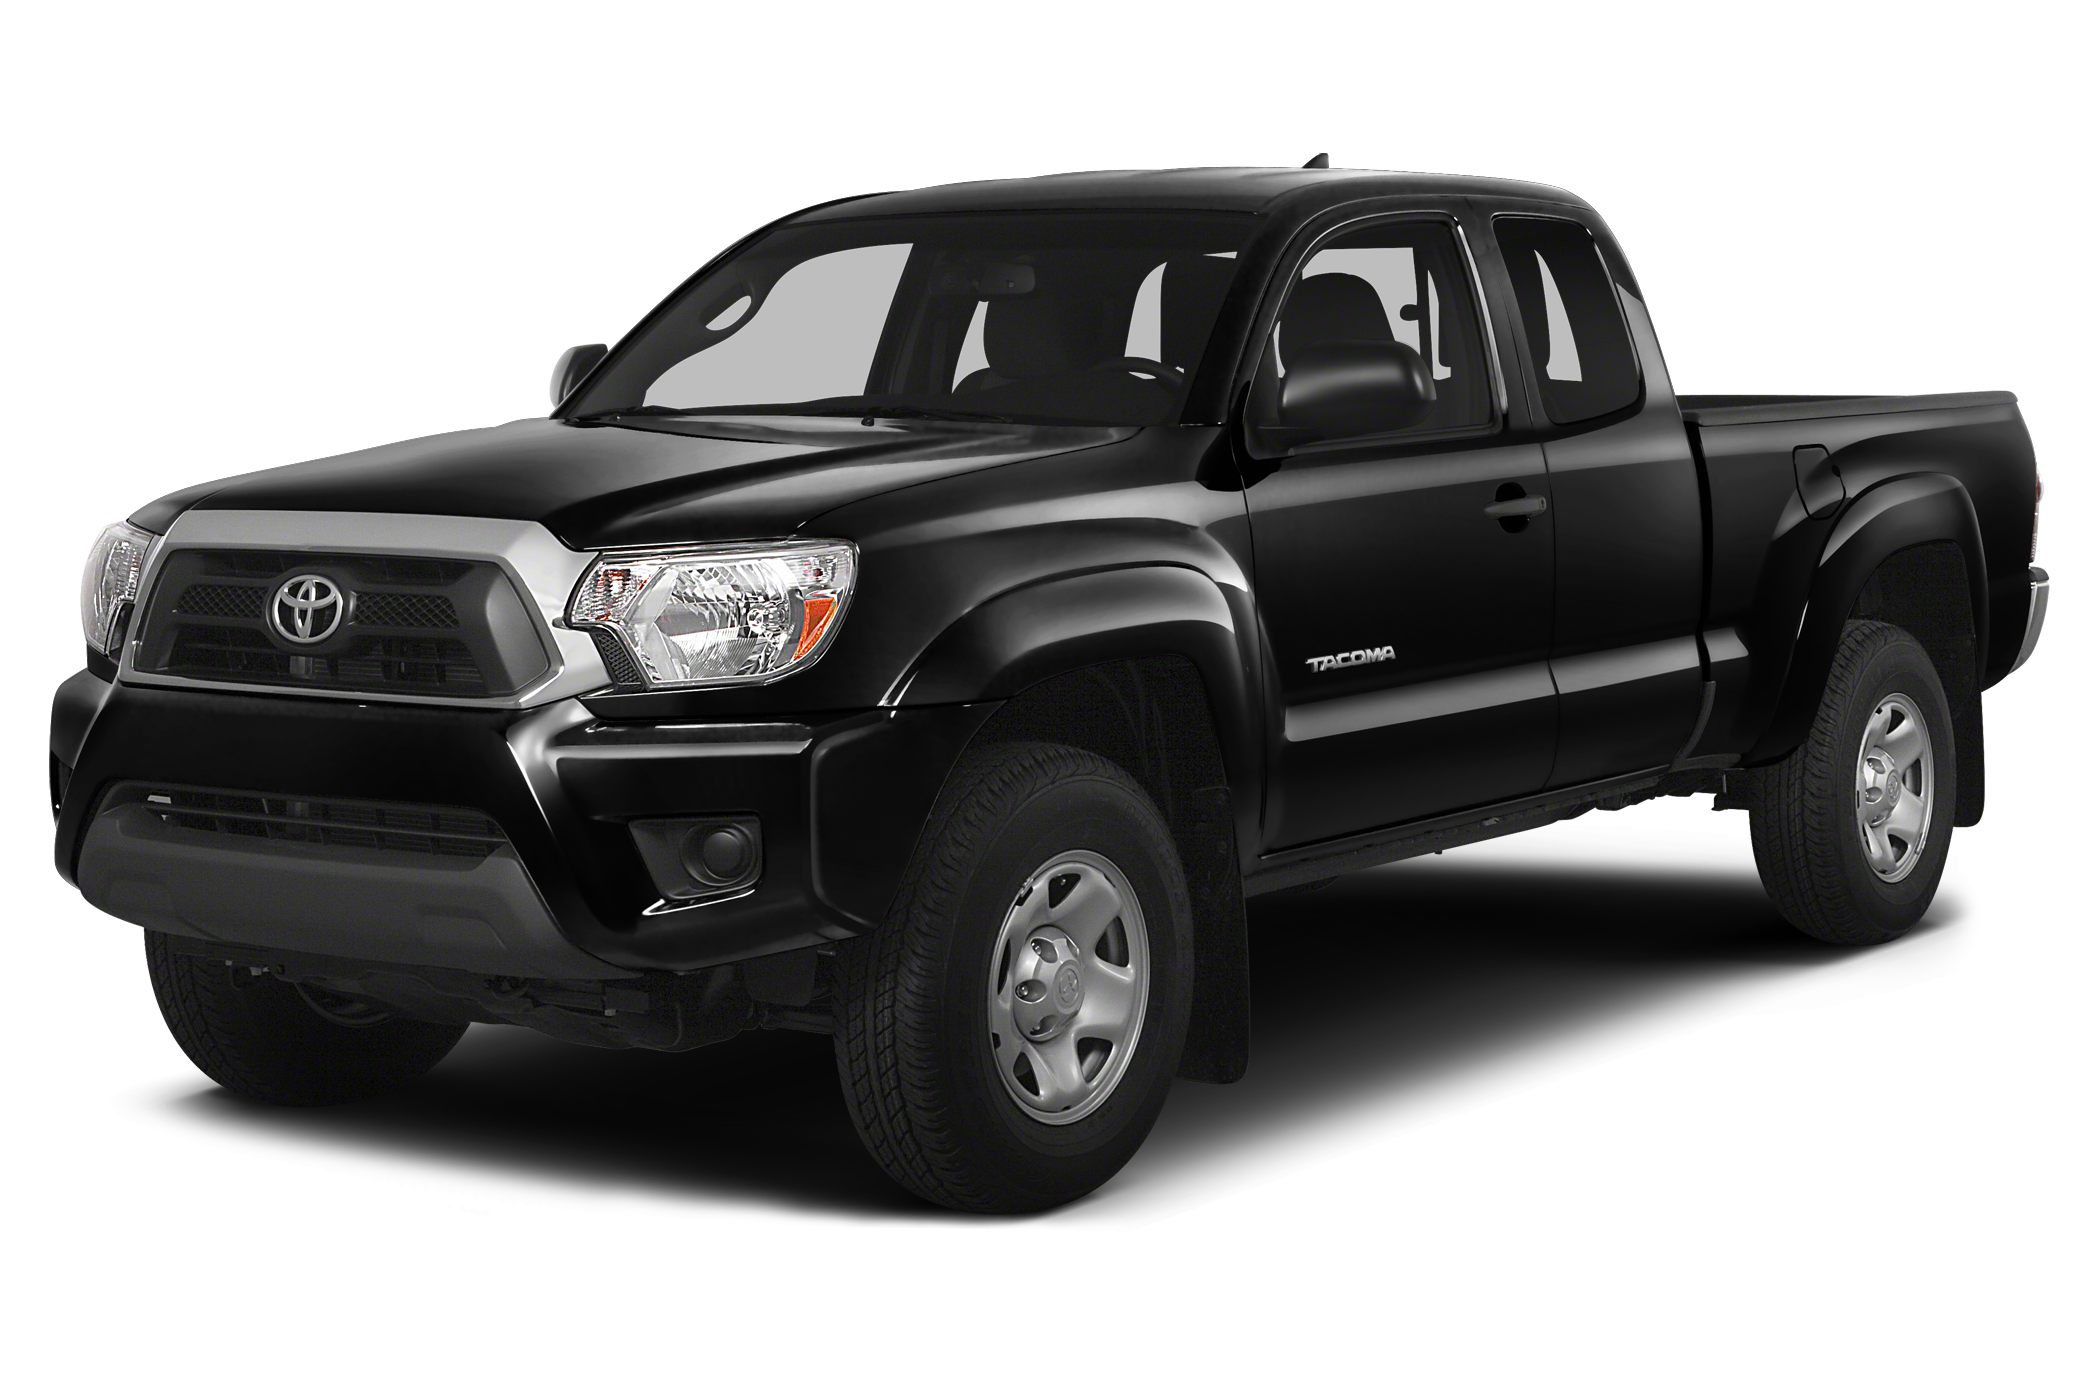 trd sport graphite tacoma toyota magnetic access photo car metallic gray colors cab